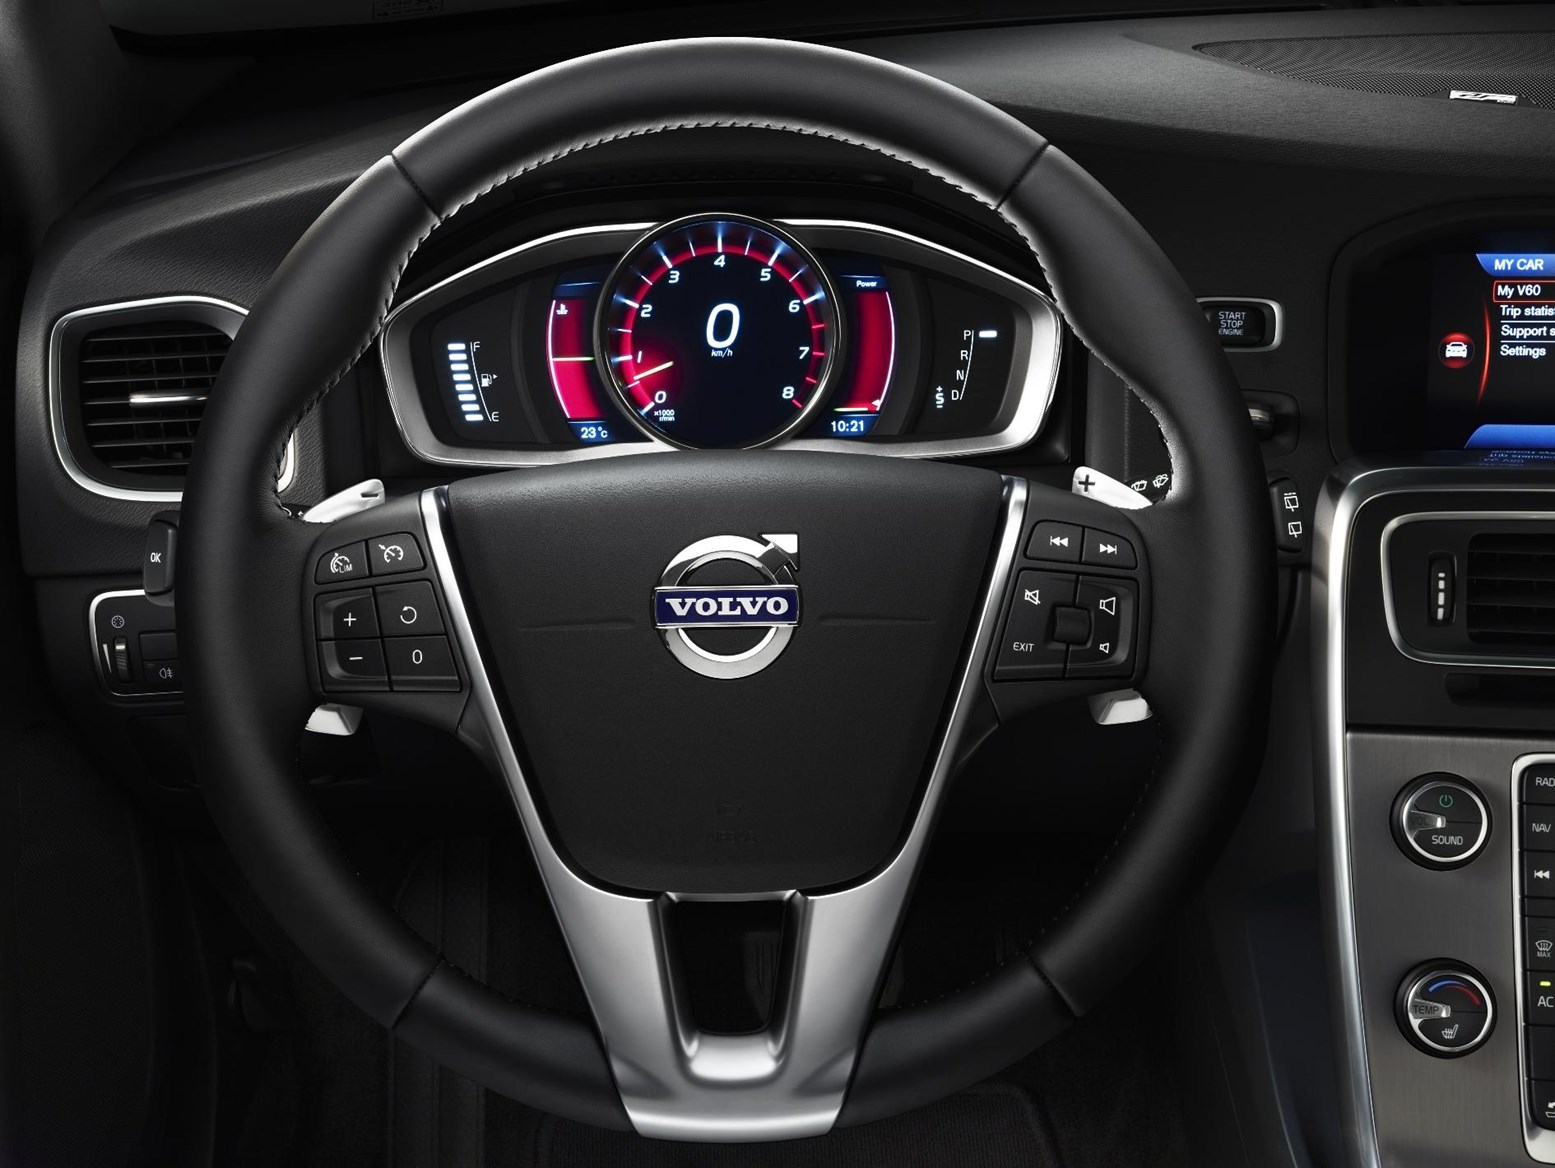 Volvo v60 cross country review 2015 parkers - View All Images Of The Volvo Xc60 08 17